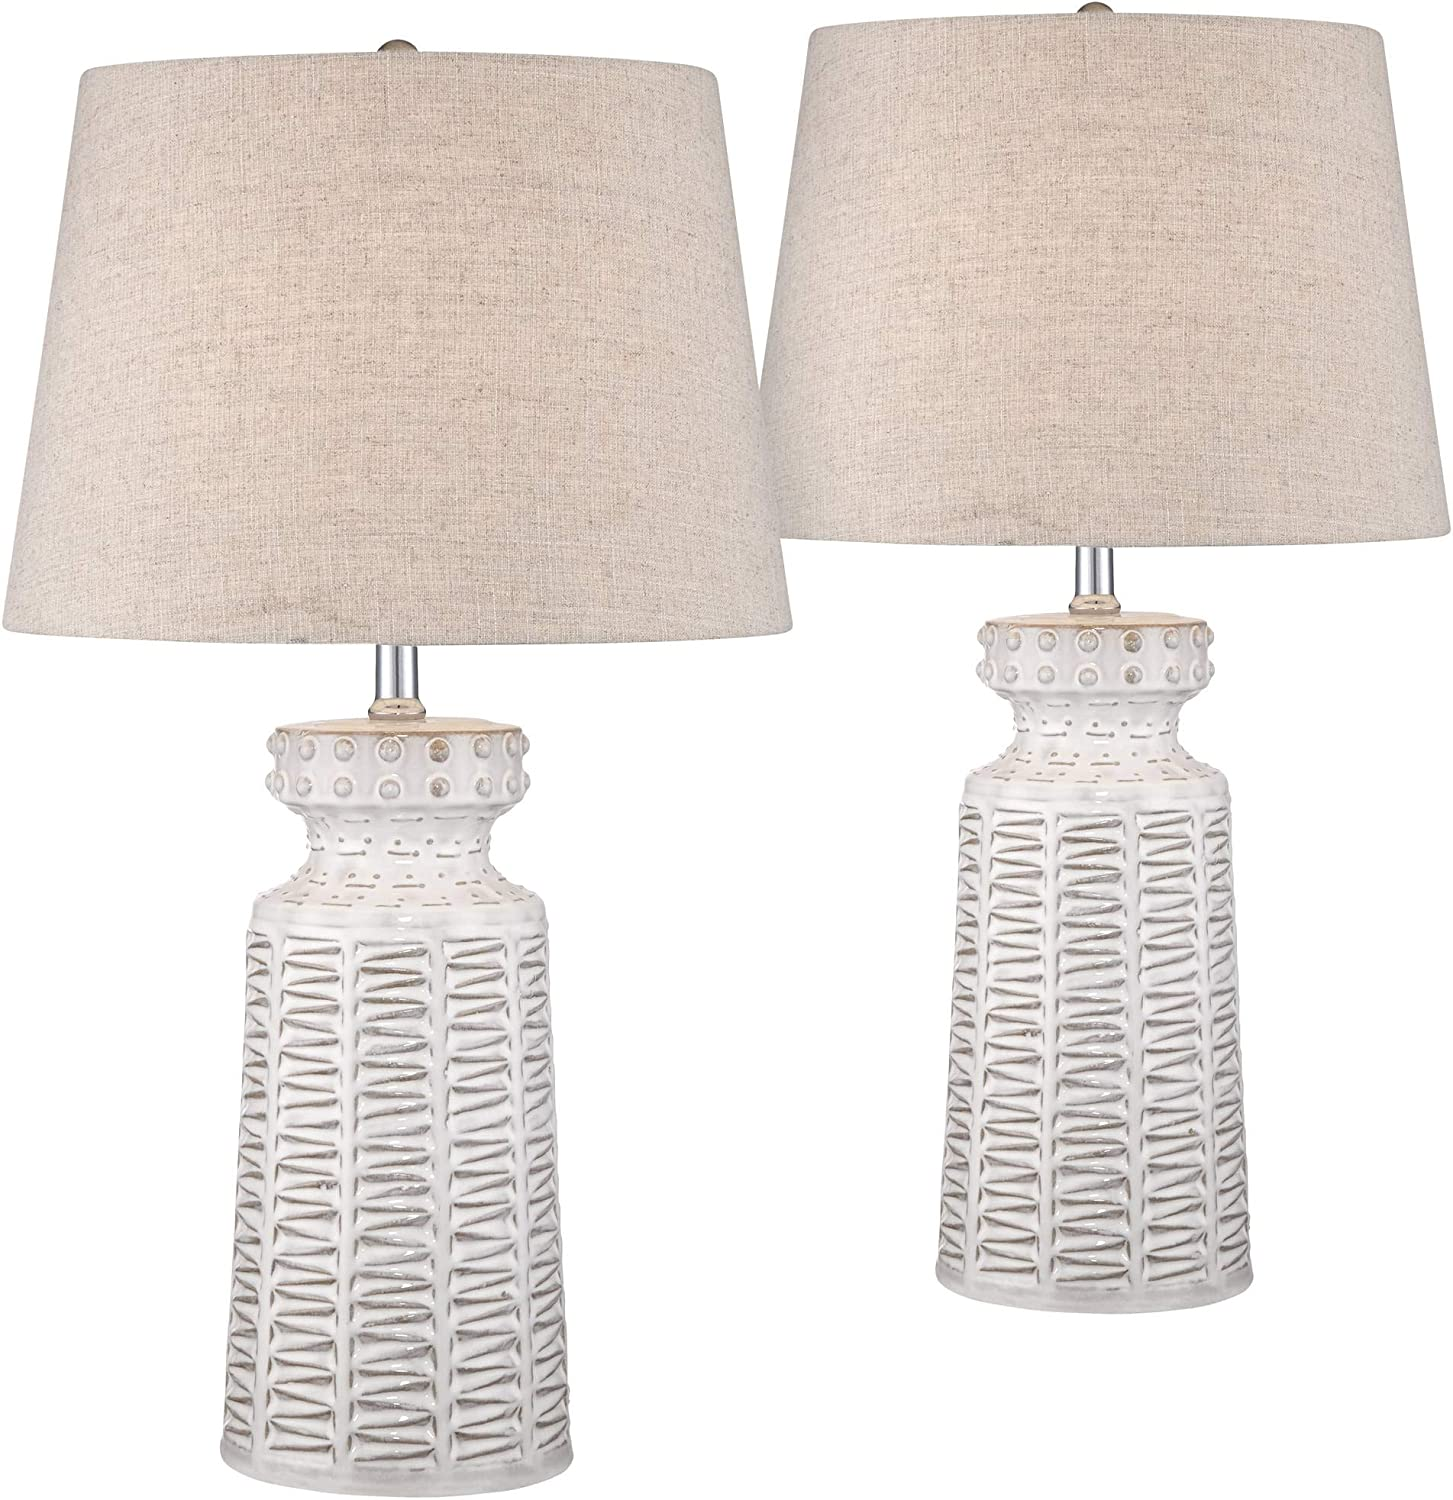 Helene Country Cottage Table Lamps Set of 2 Ceramic Rustic White Glaze Linen Shade for Living Room Family Bedroom Bedside - 360 Lighting